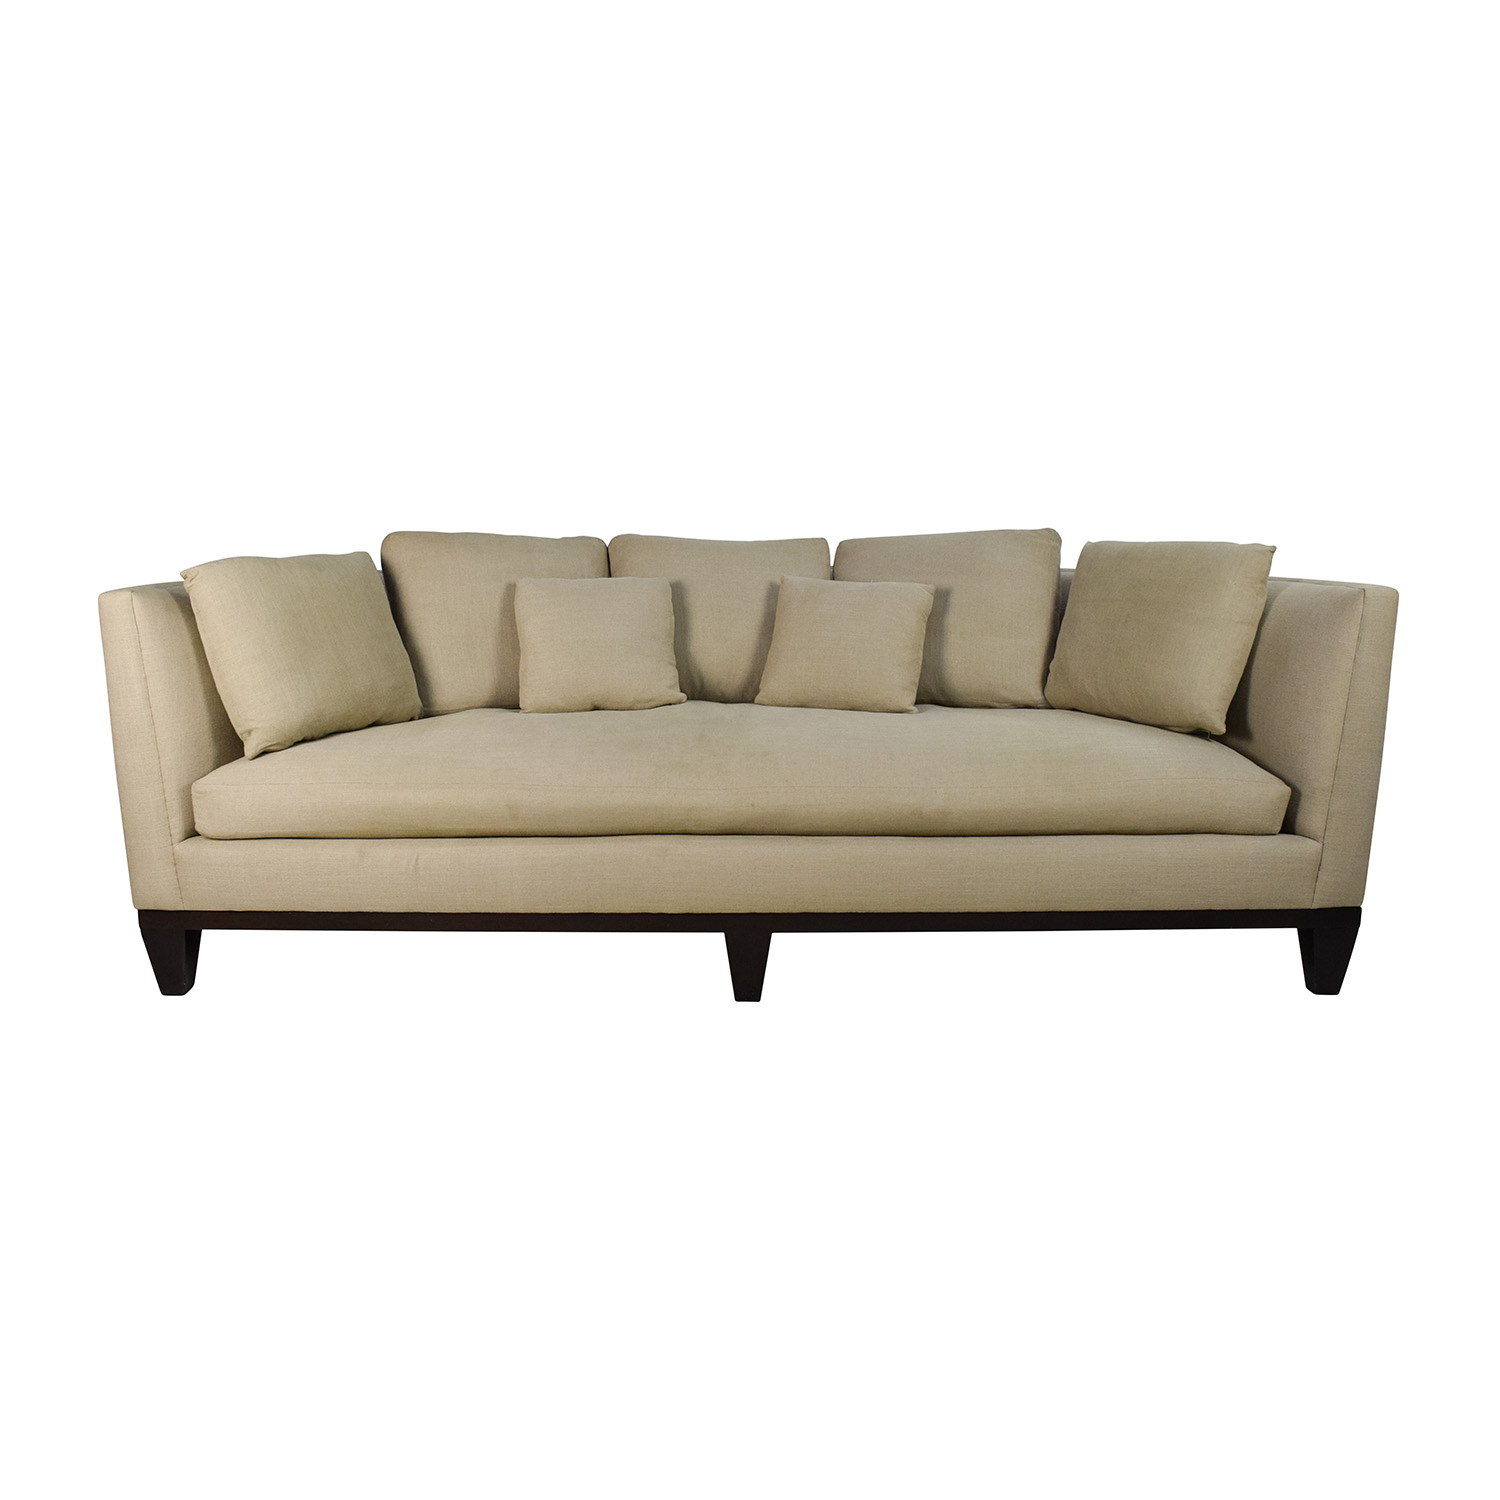 Barbara Barry Barbara Barry Conversation Sofa Tan ...